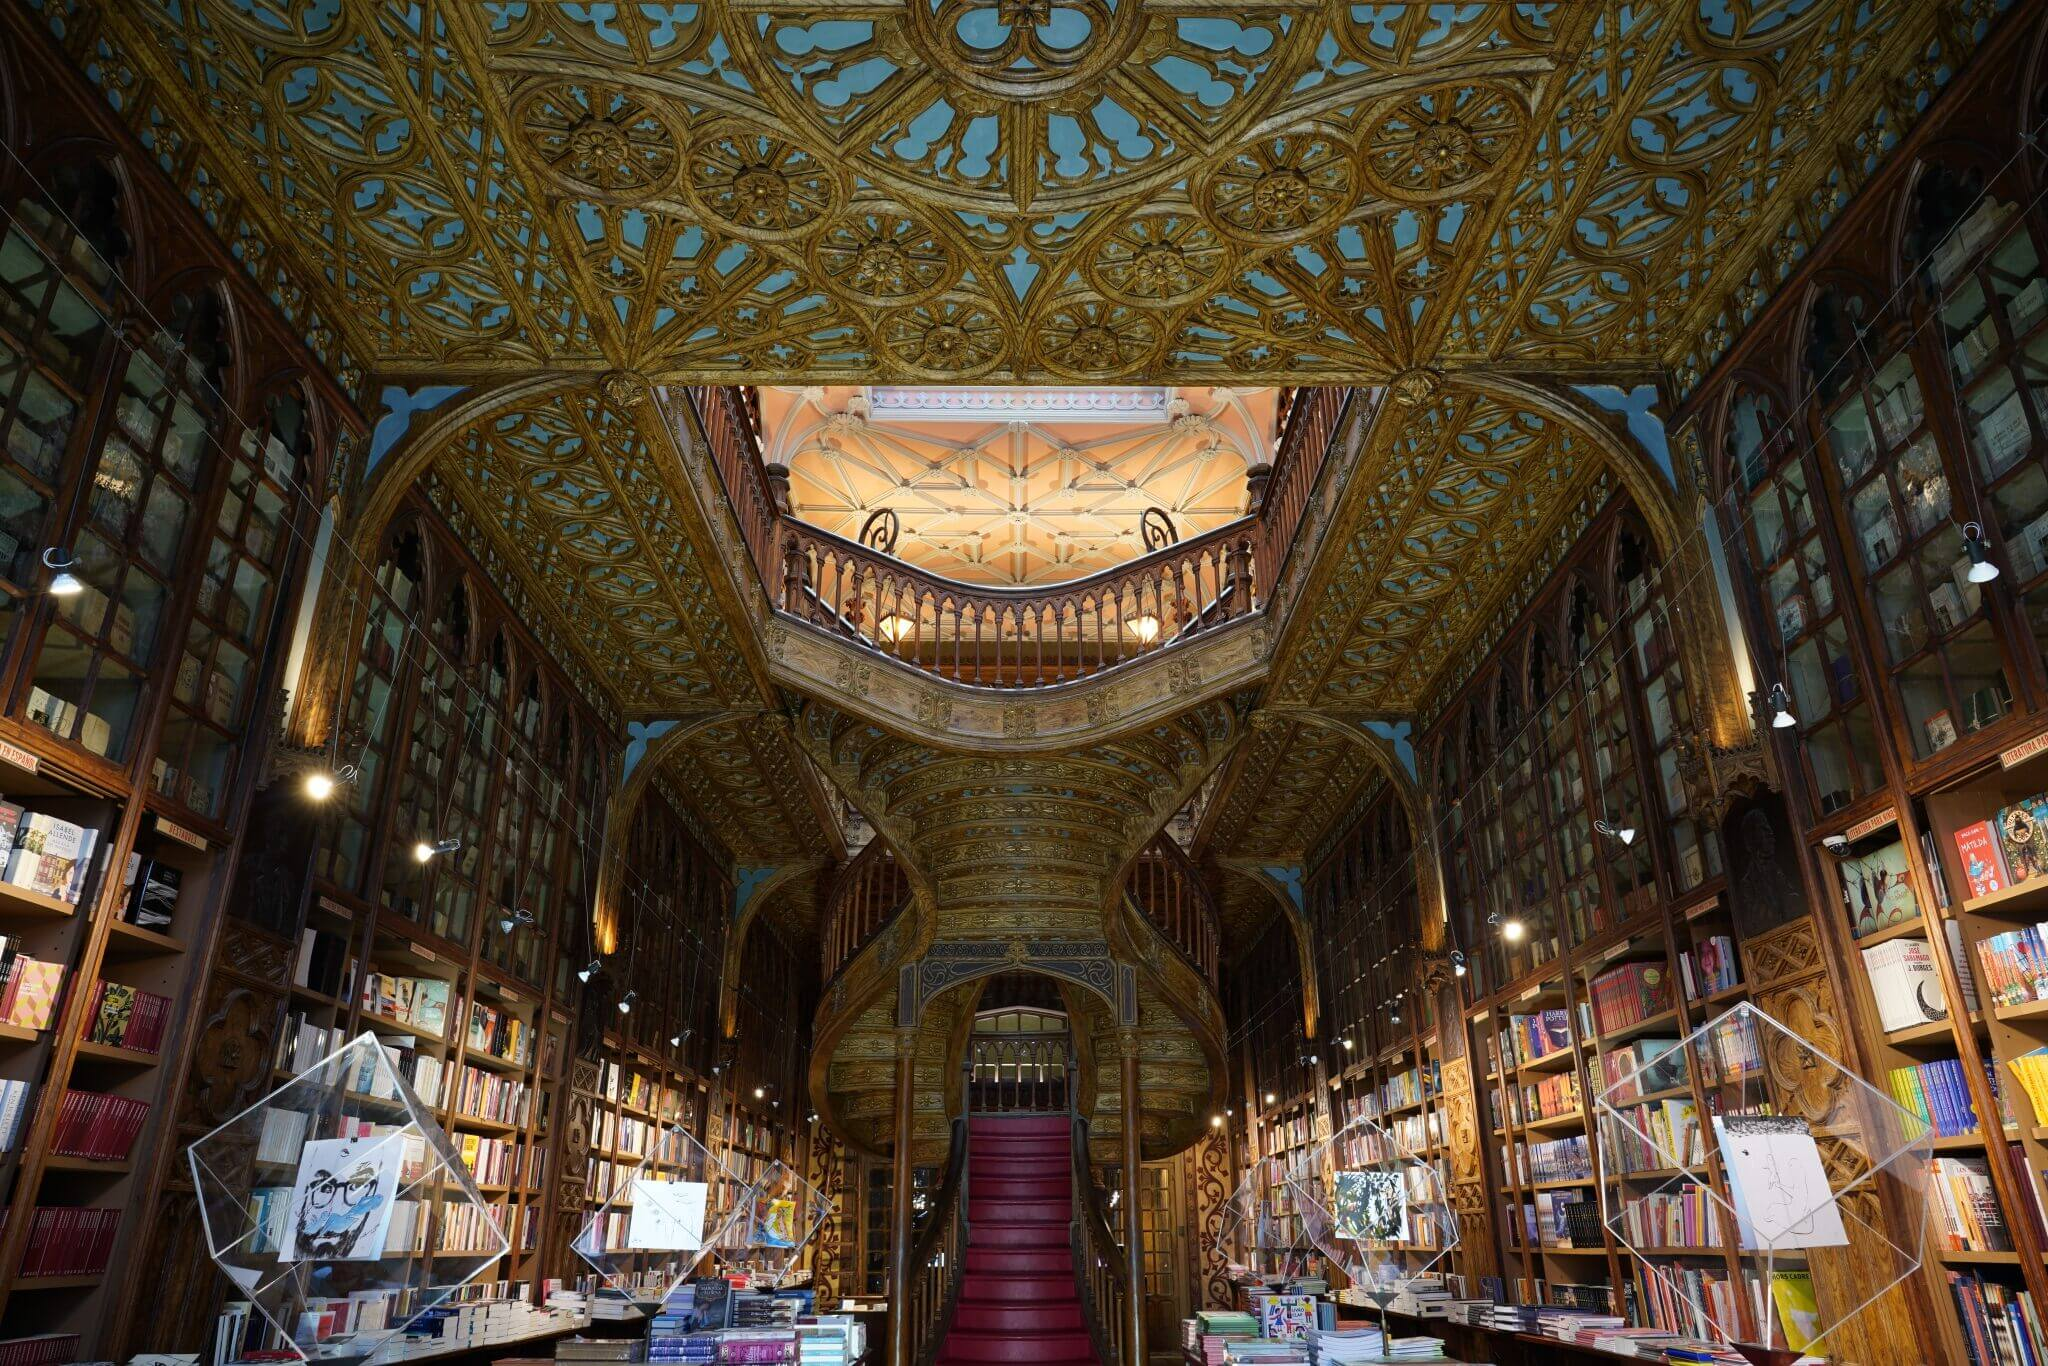 Interior of Livraria Lello bookshop in Porto, Portugal, photographed with the Sony 24mm 1.4 GM lens